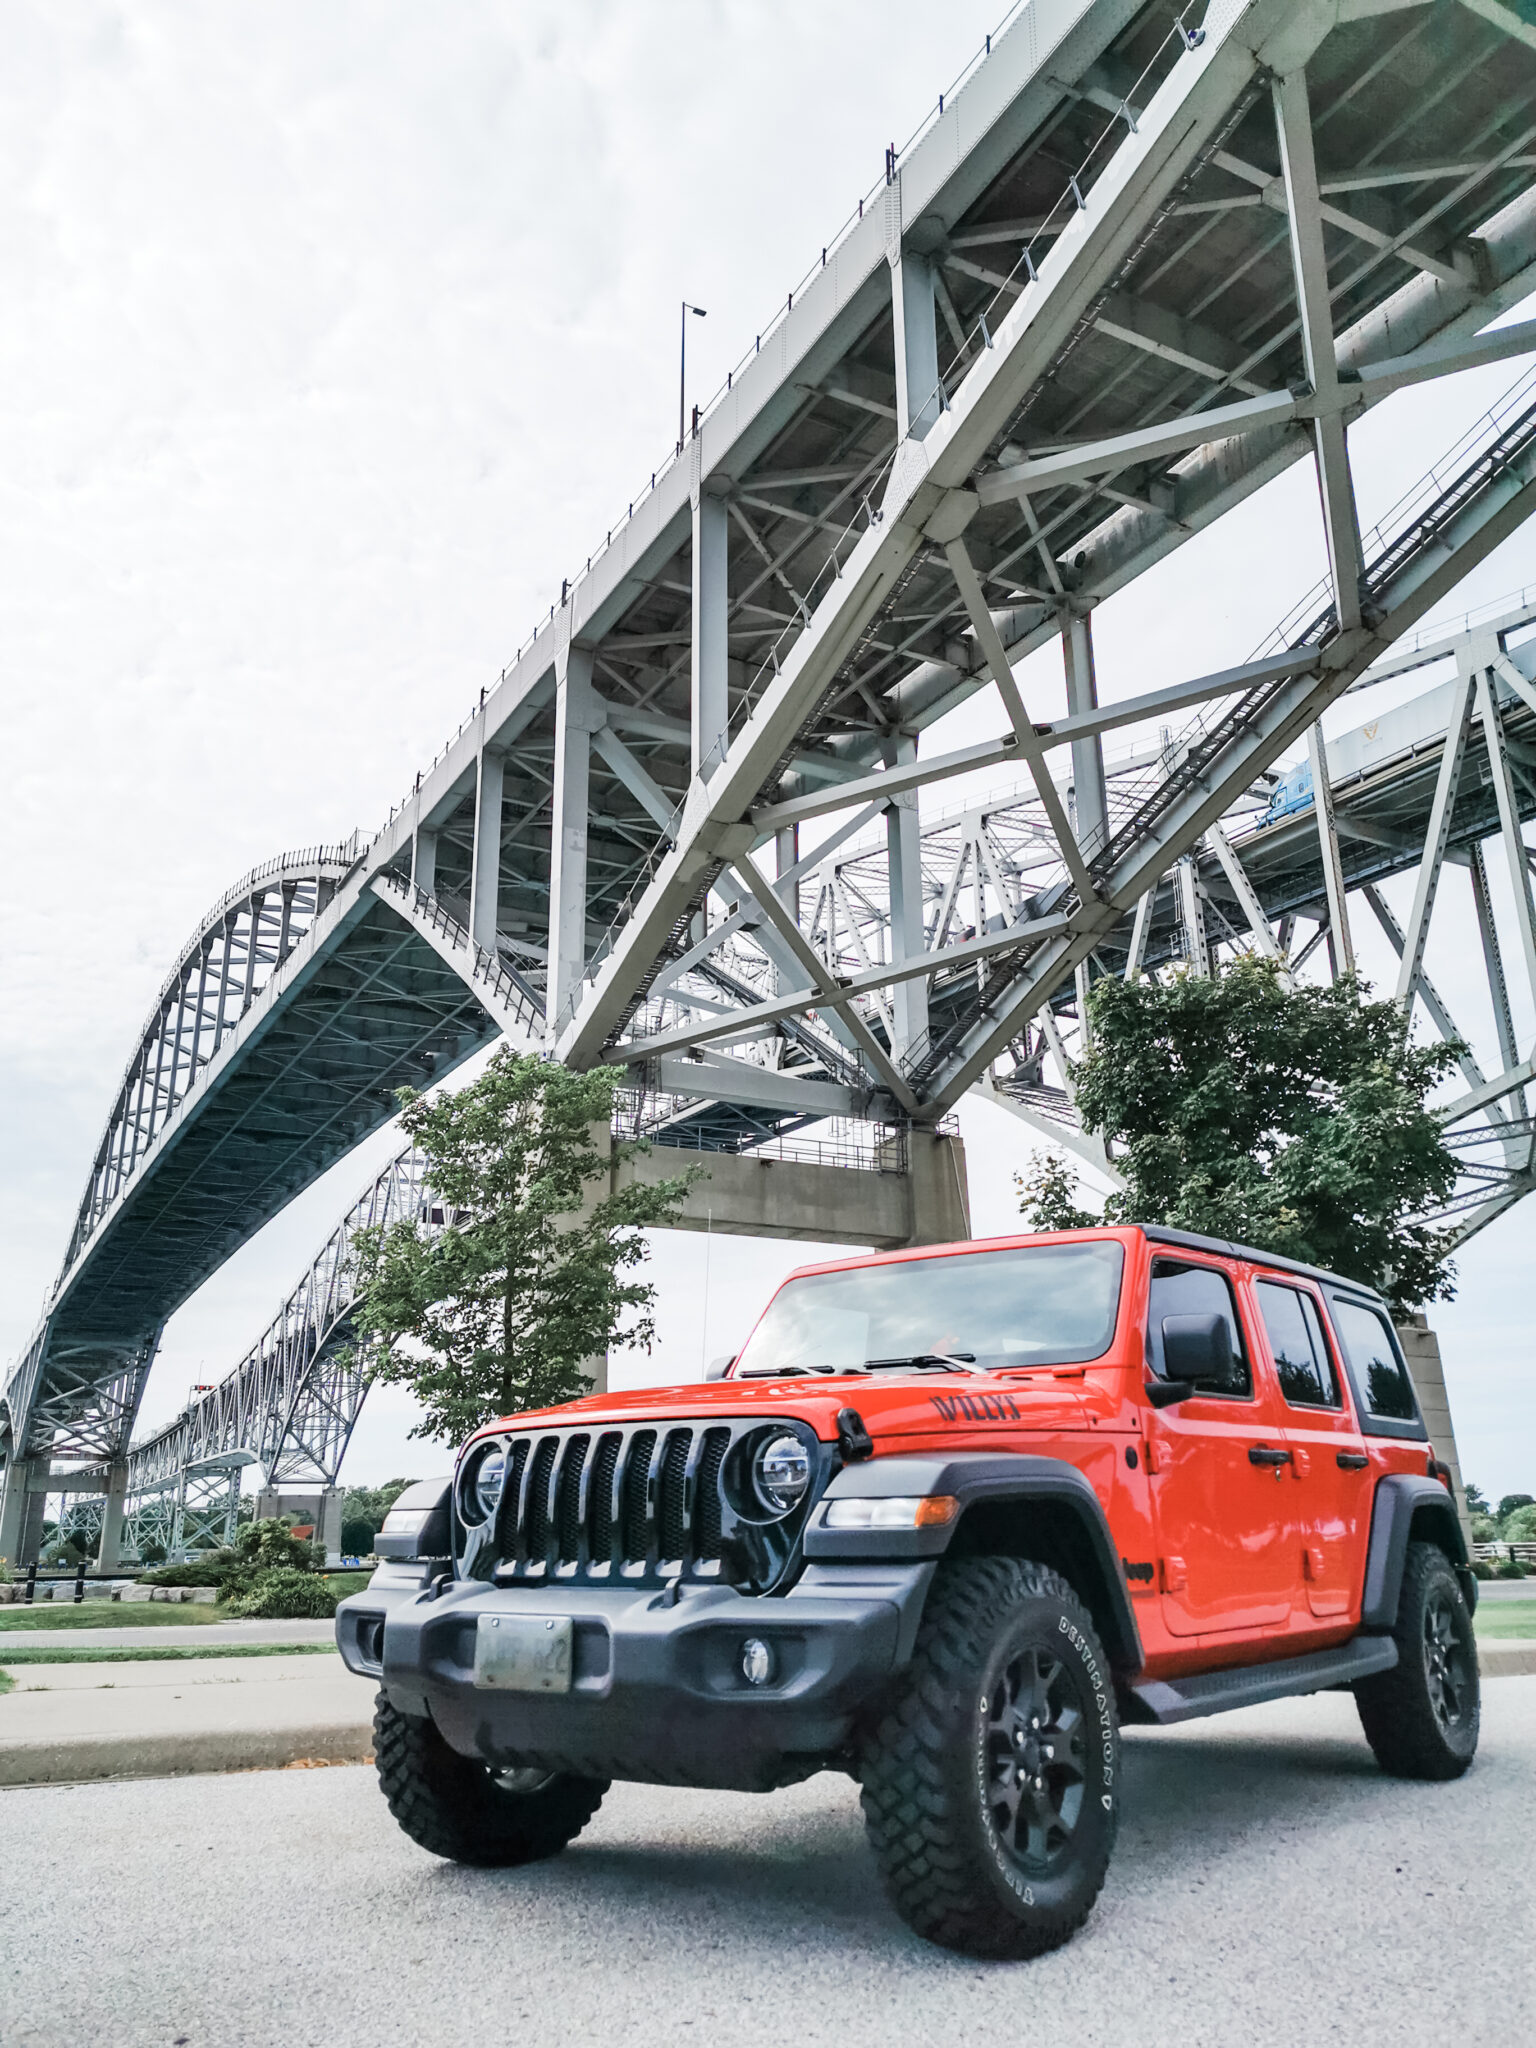 A 2020 Jeep Wrangler is parked in front of the Bluewater Bridge in Sarnia, ON.